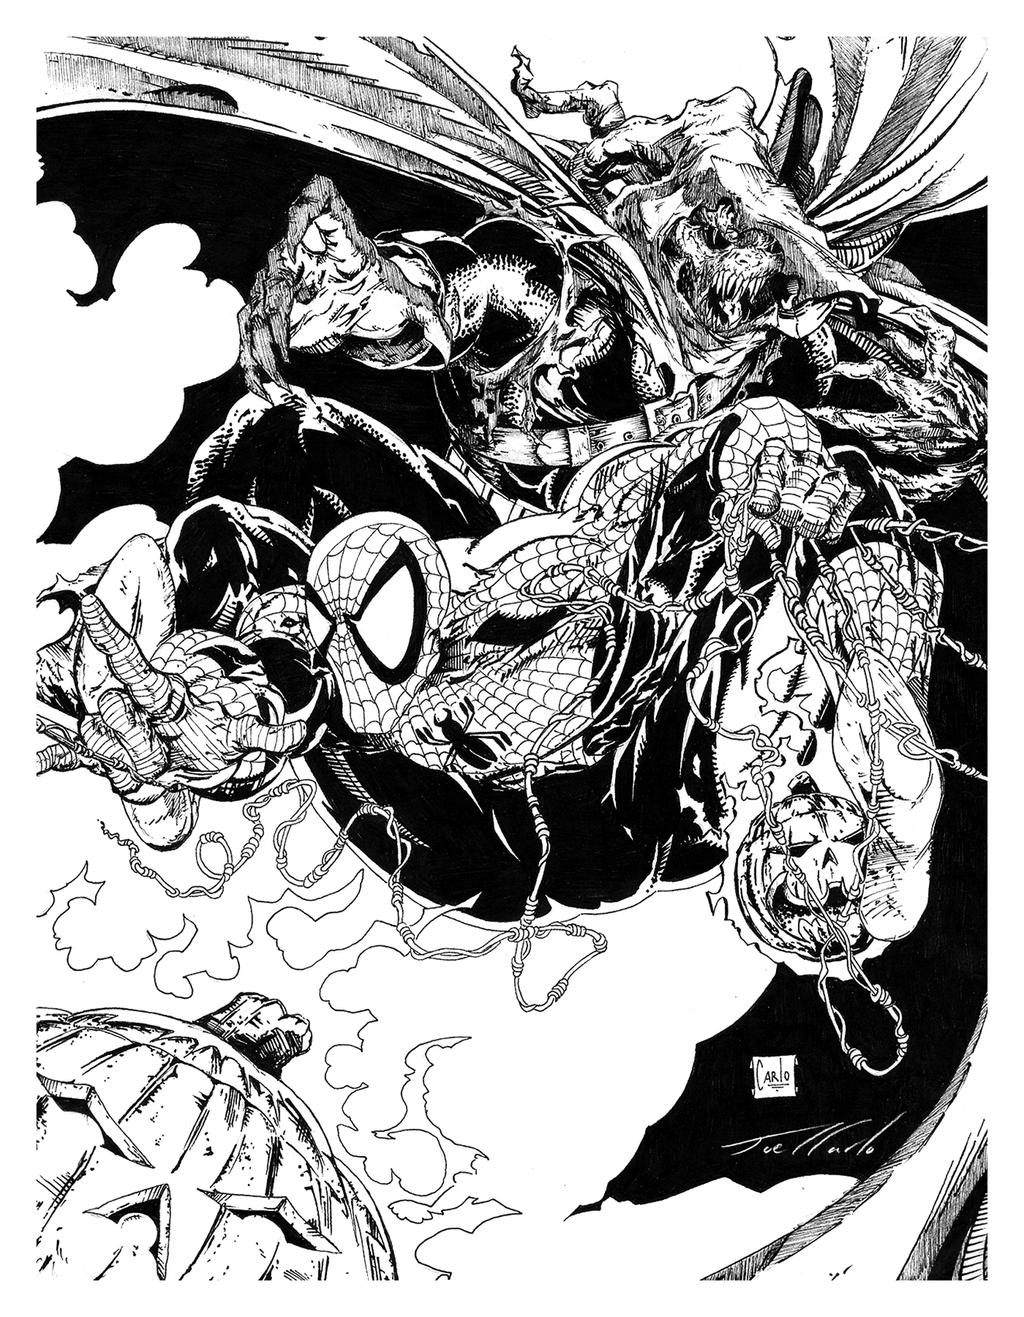 Comic Book Art by Todd McFarlane by FringerFrankie